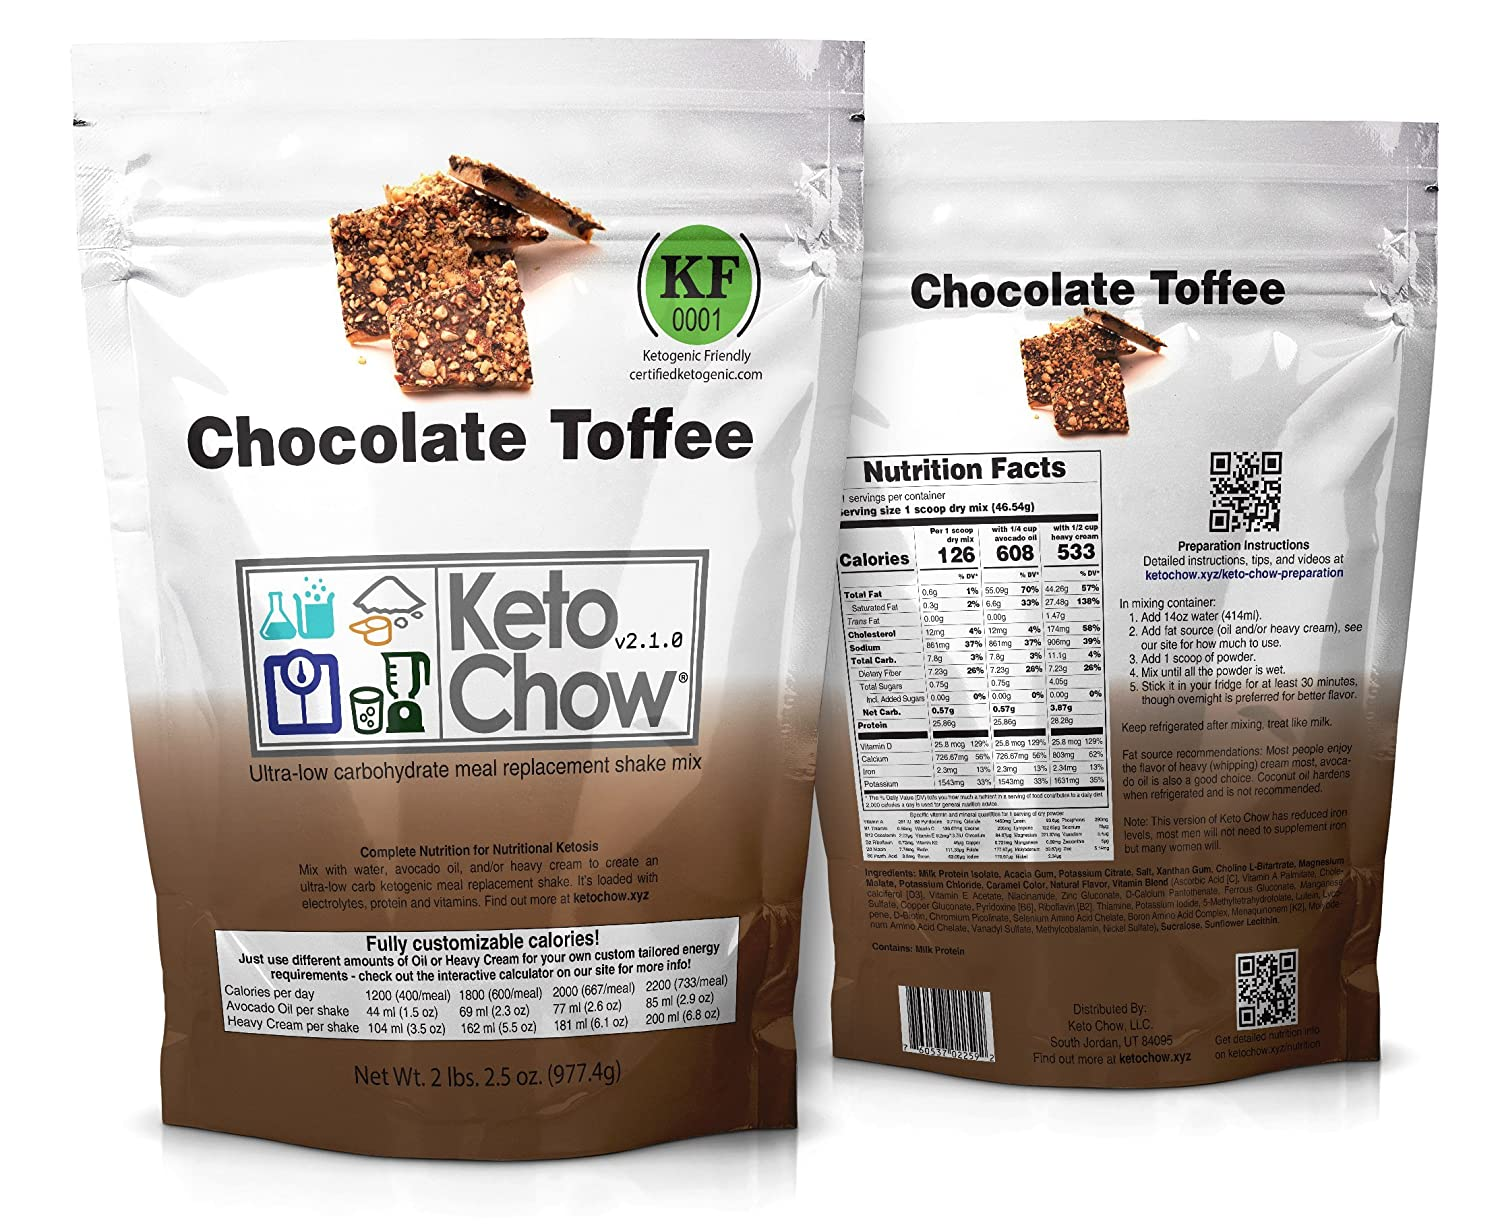 Keto Chow Keto Meal Replacement Shake package